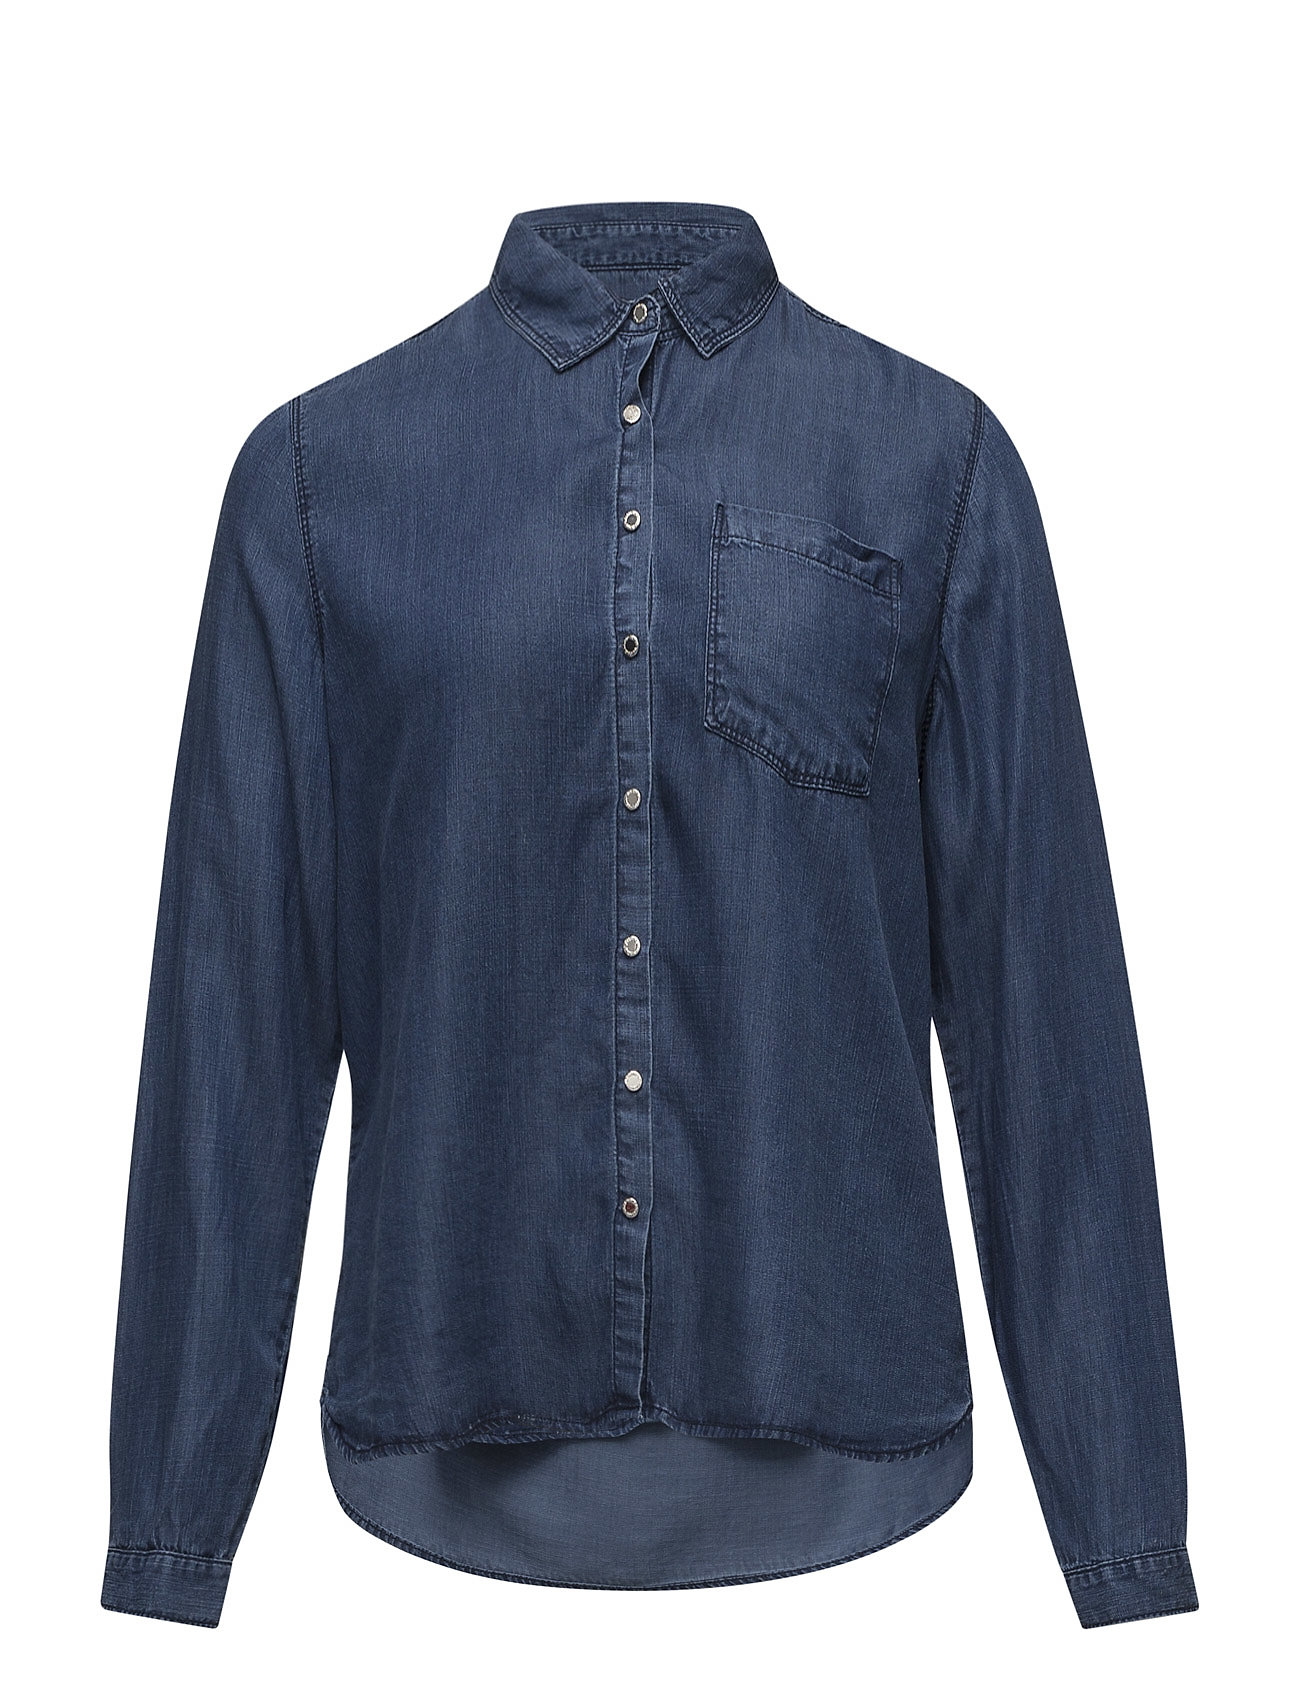 Medium Denim Shirt Violeta by Mango Langærmede til Damer i Open Blå